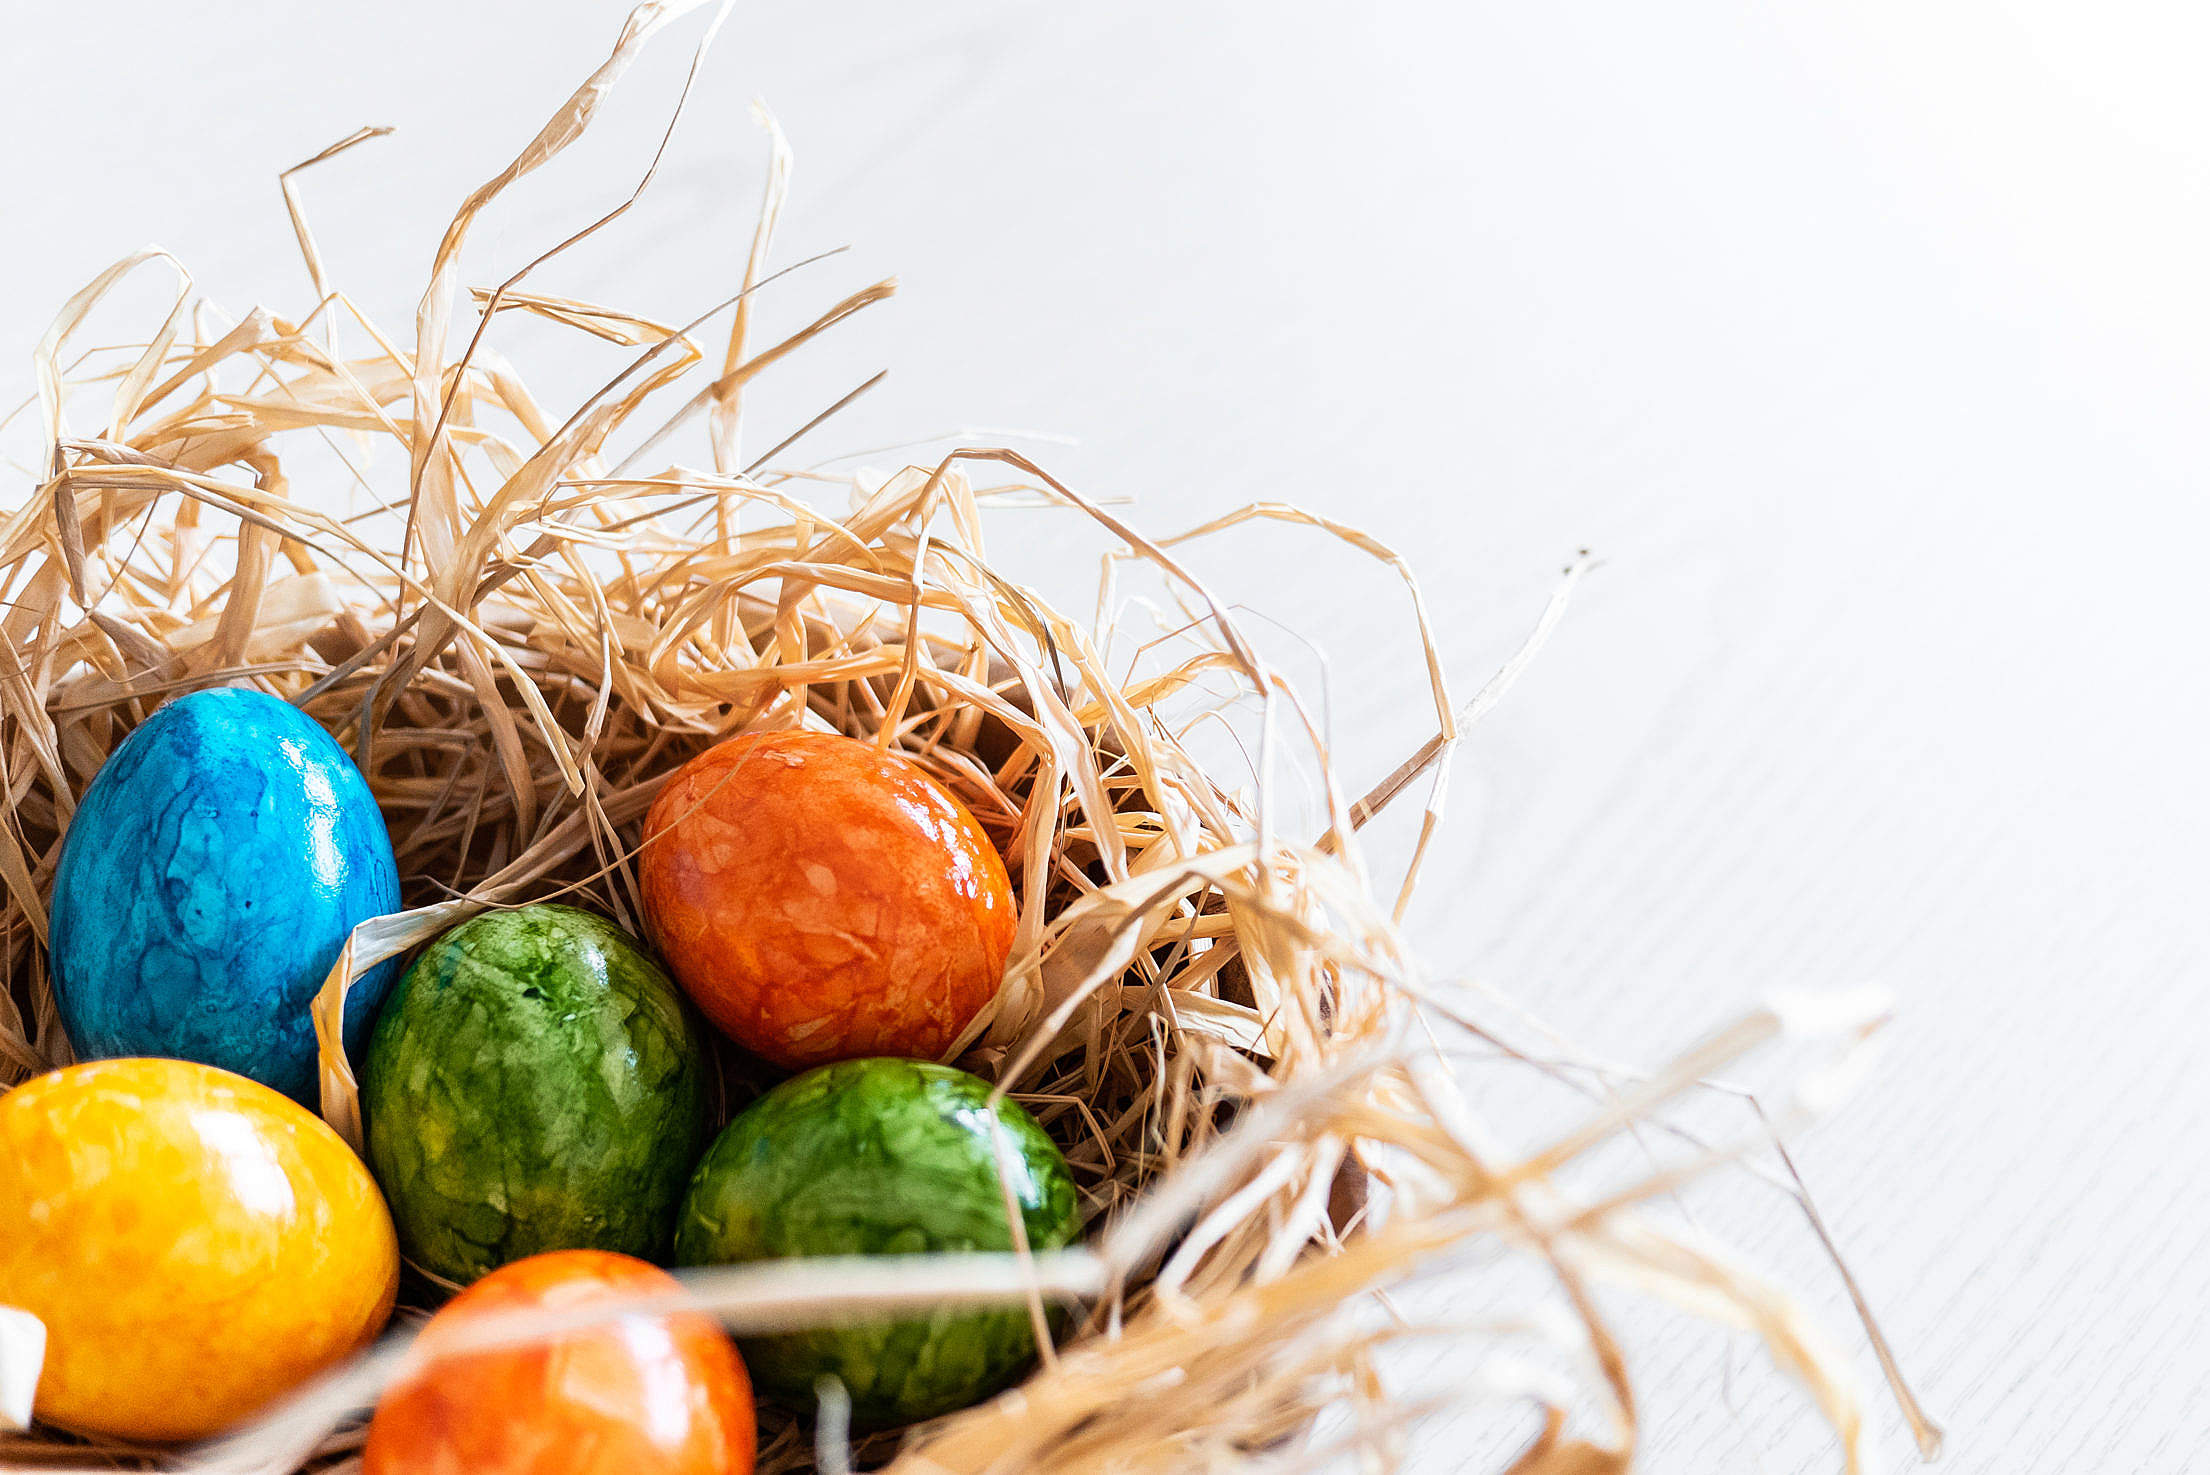 Dyed Eggs in a Basket Free Stock Photo